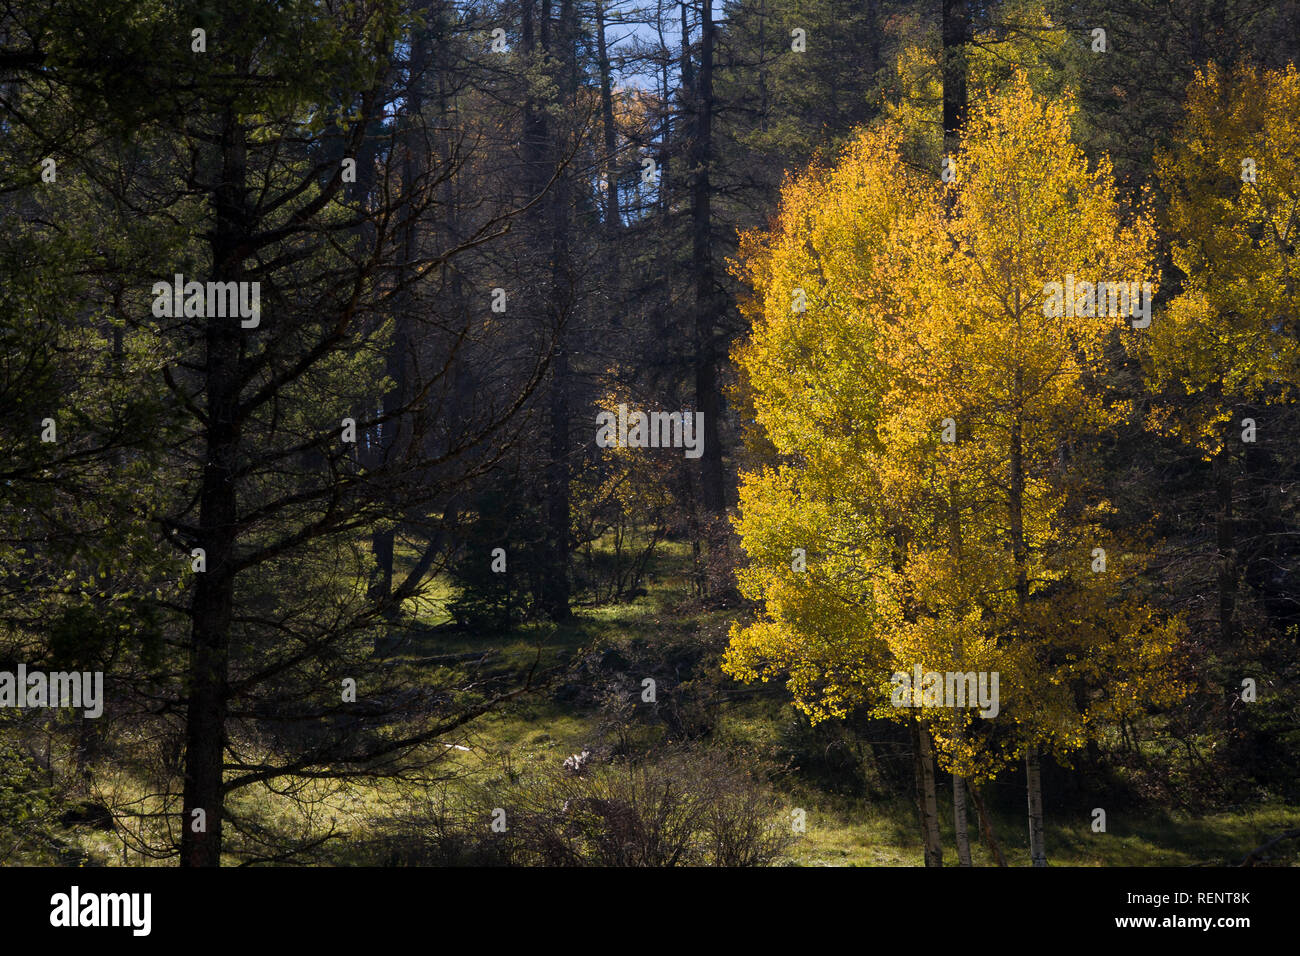 Yellow Aspens surrounded by pine trees in the Sacramento Mountains of New Mexico - Stock Image